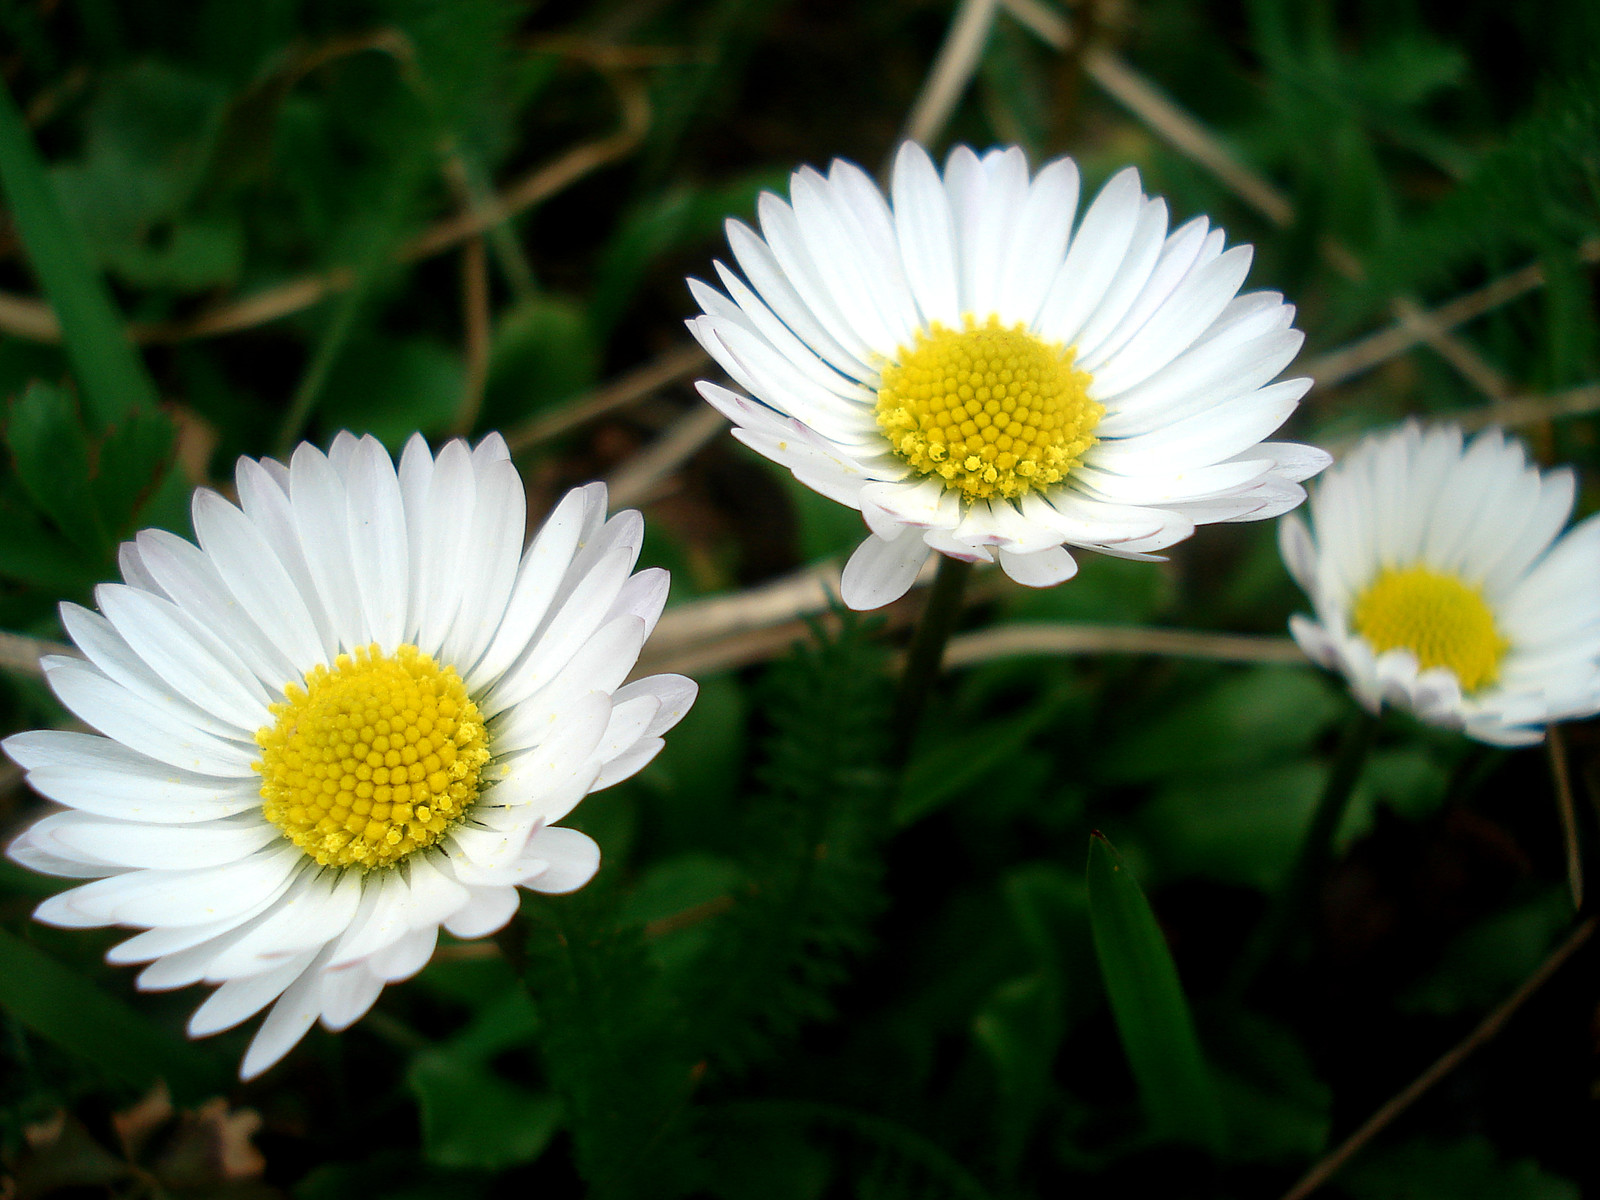 German Chamomile flowers - white petals and bright yellow centers with blurred greenery in the background